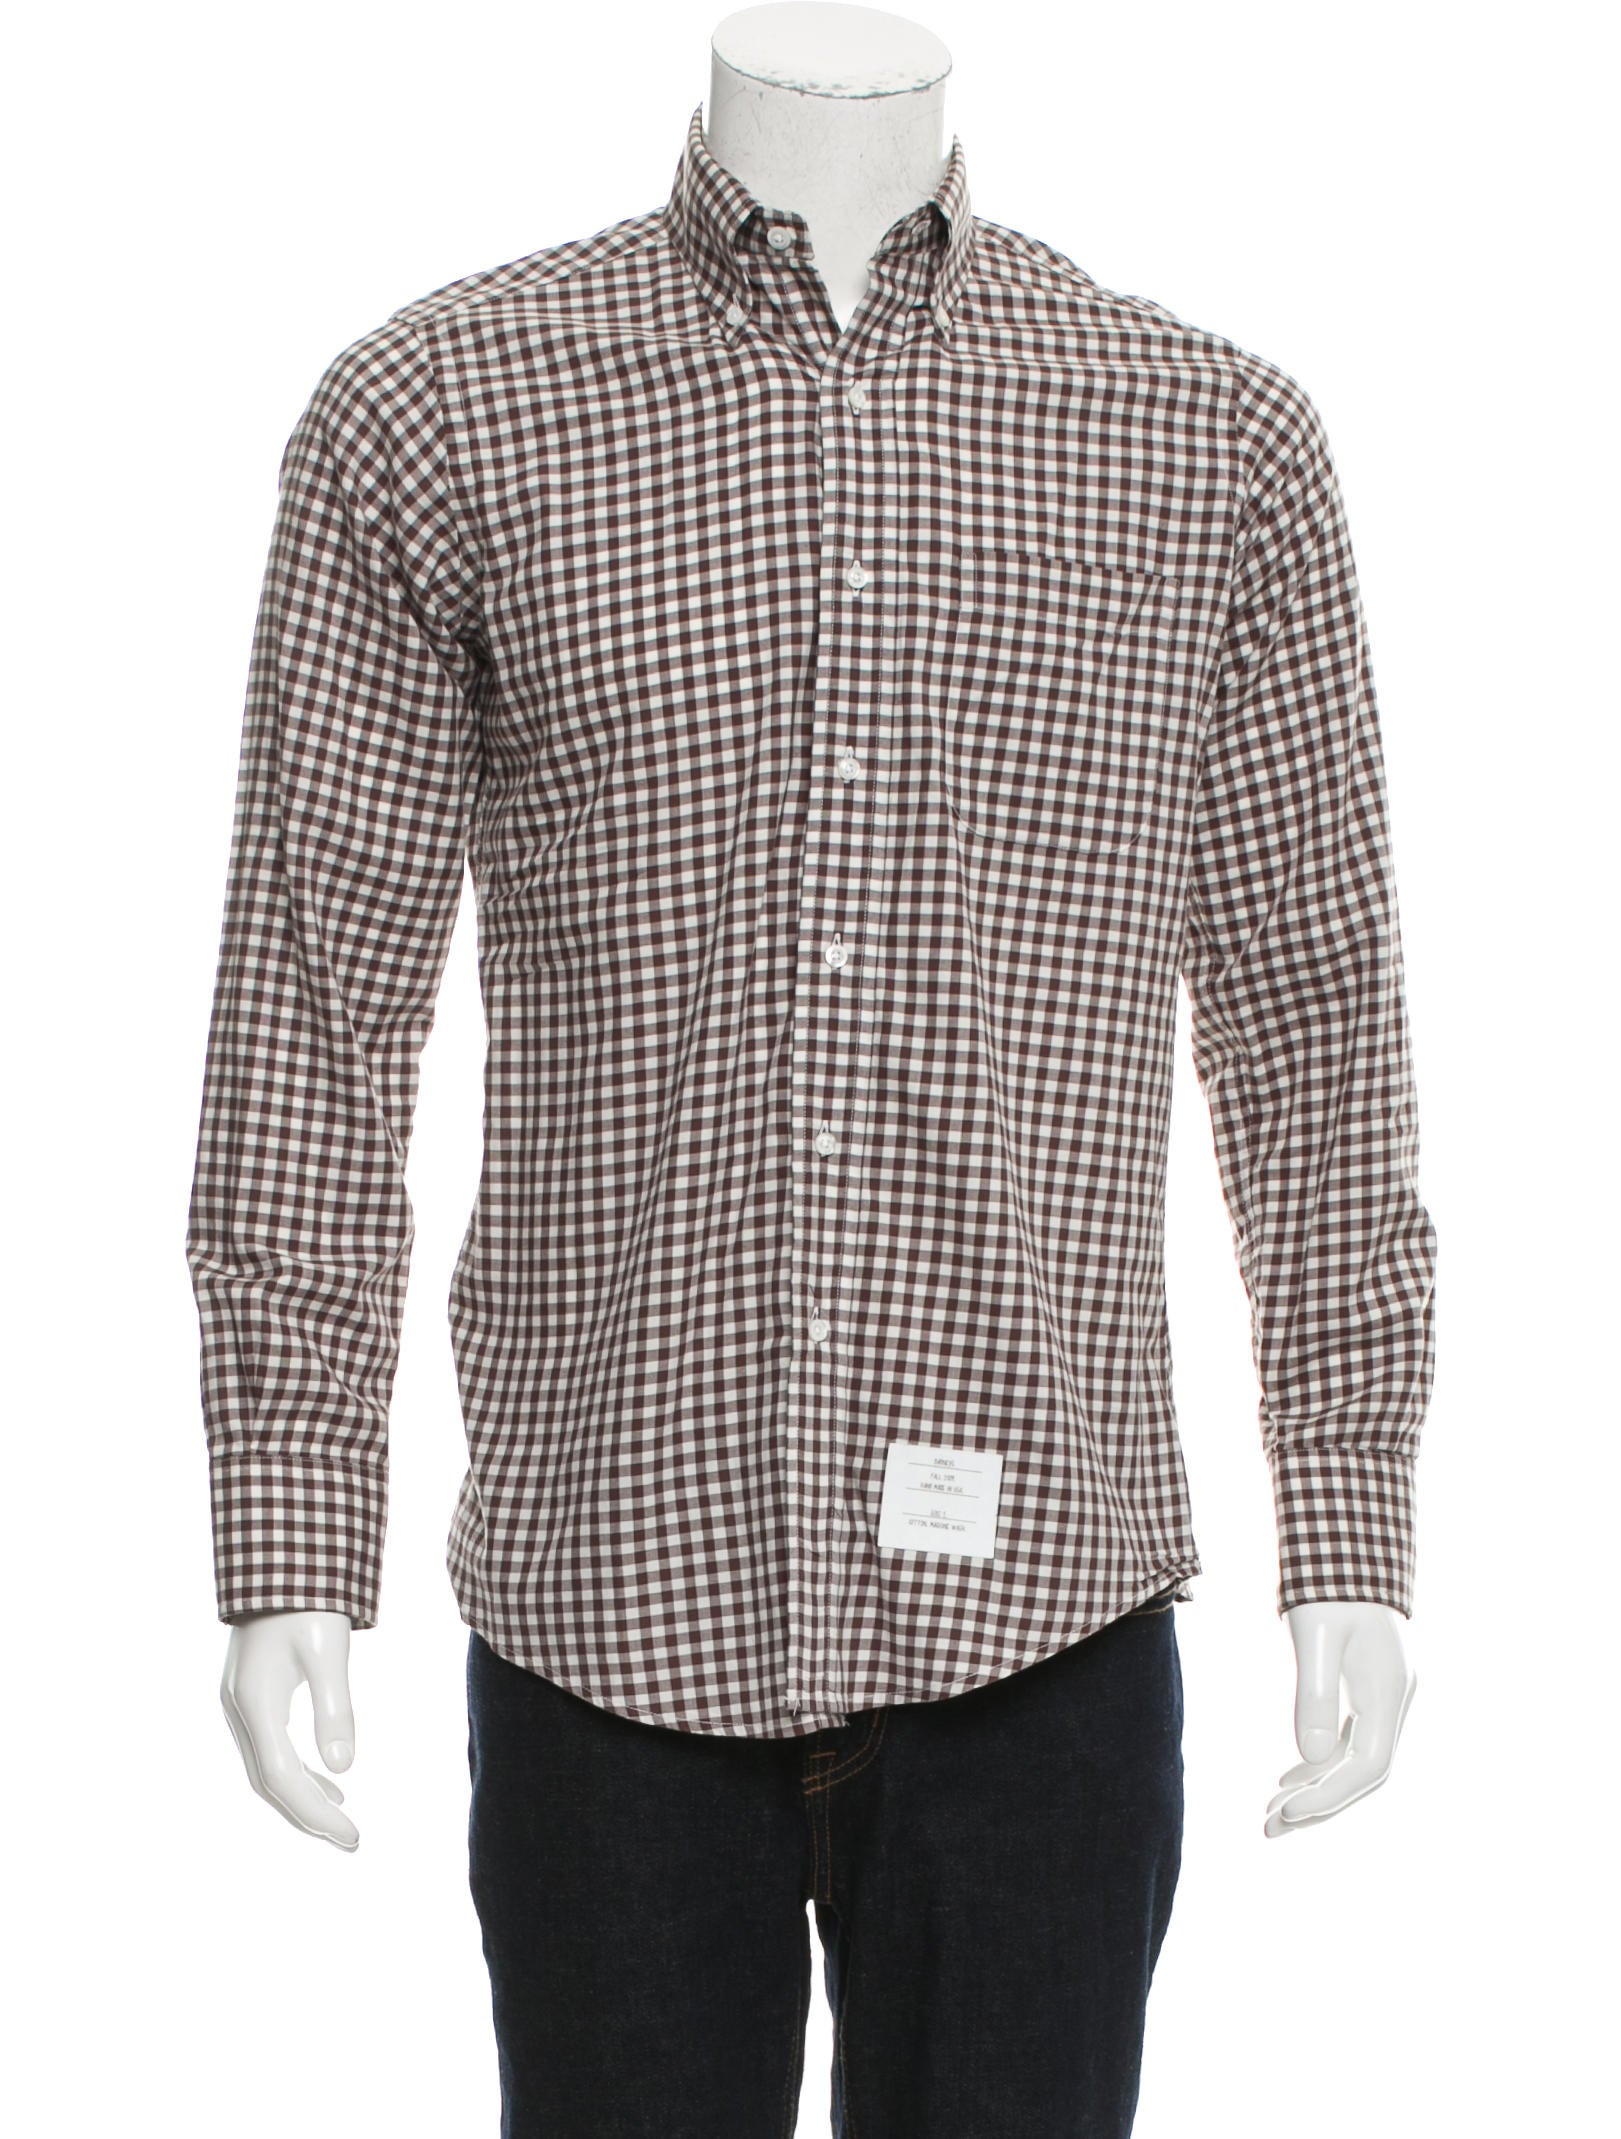 Thom browne gingham button up shirt clothing tho22149 for Thom browne shirt sale